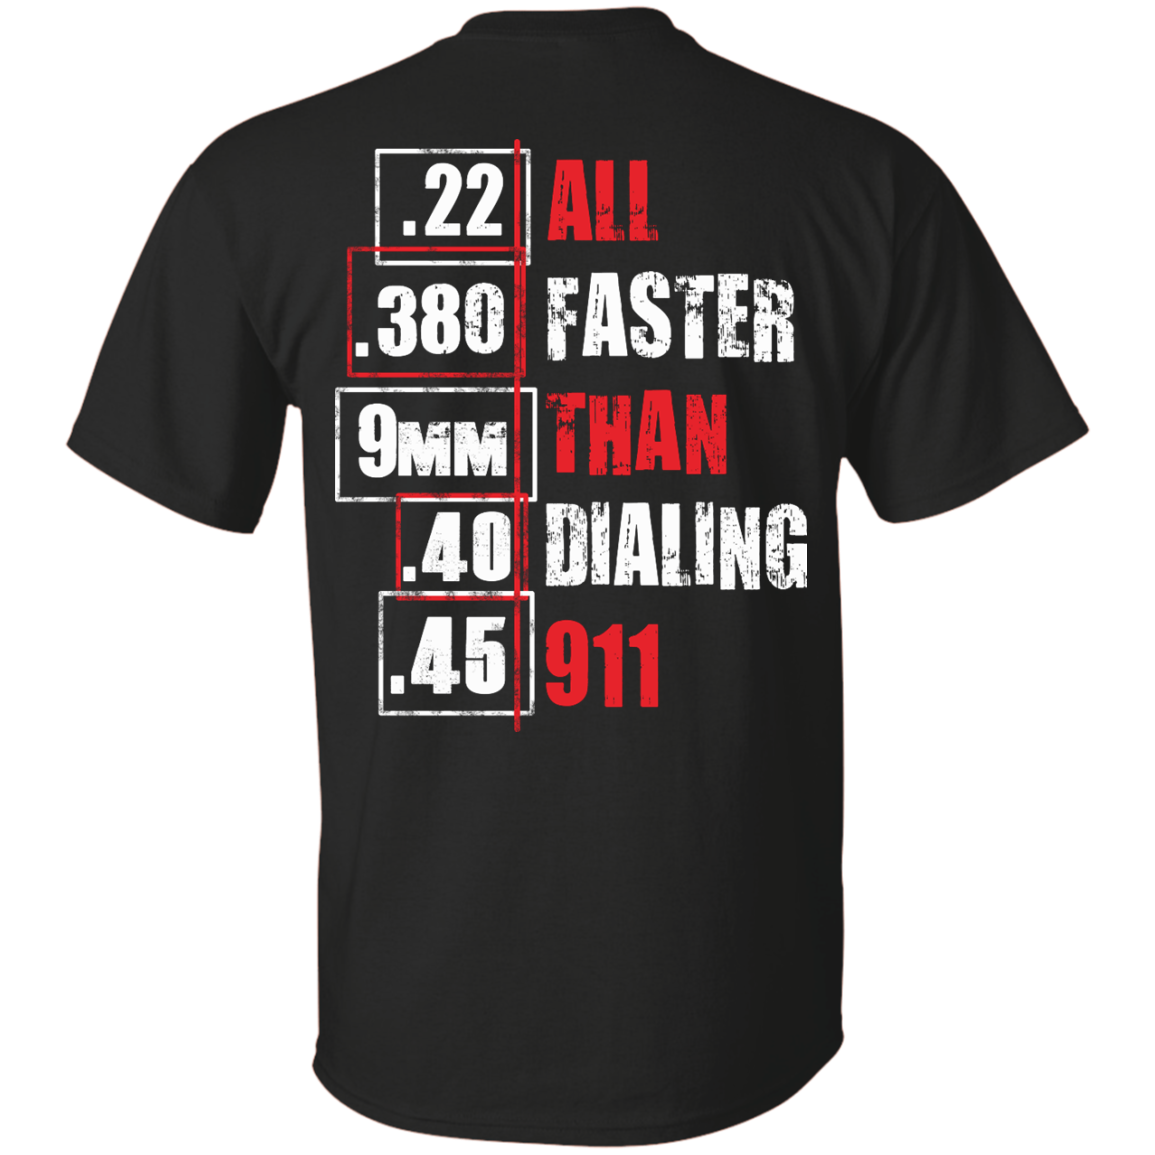 All Faster Than Dialing 911 Funny gun saying T-shirt & Hoodie